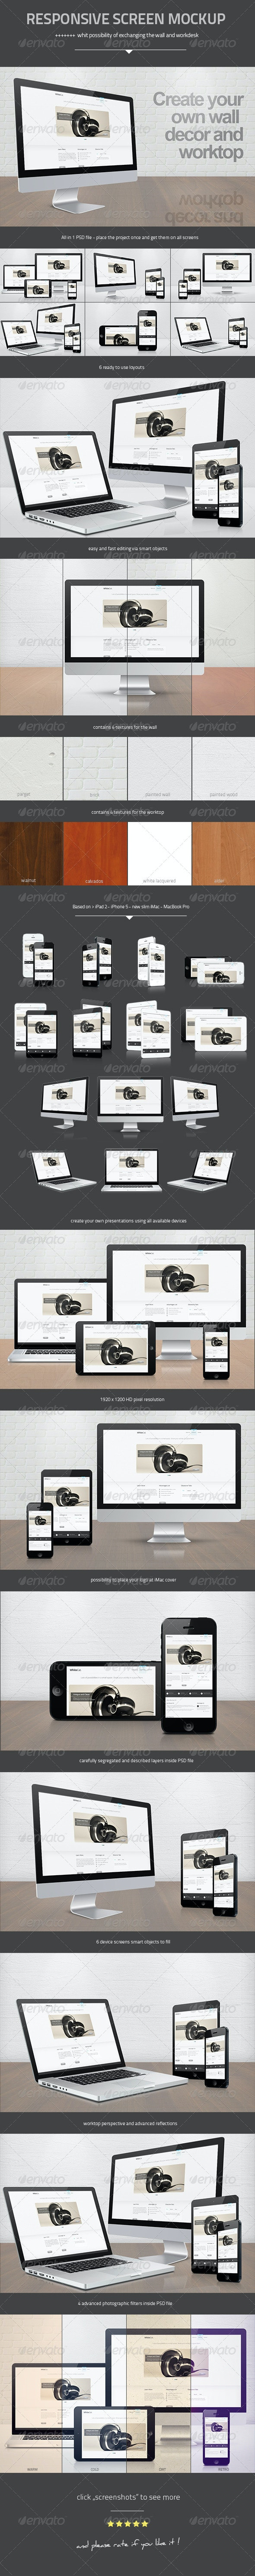 Responsive Screen Mock-up - Miscellaneous Apparel